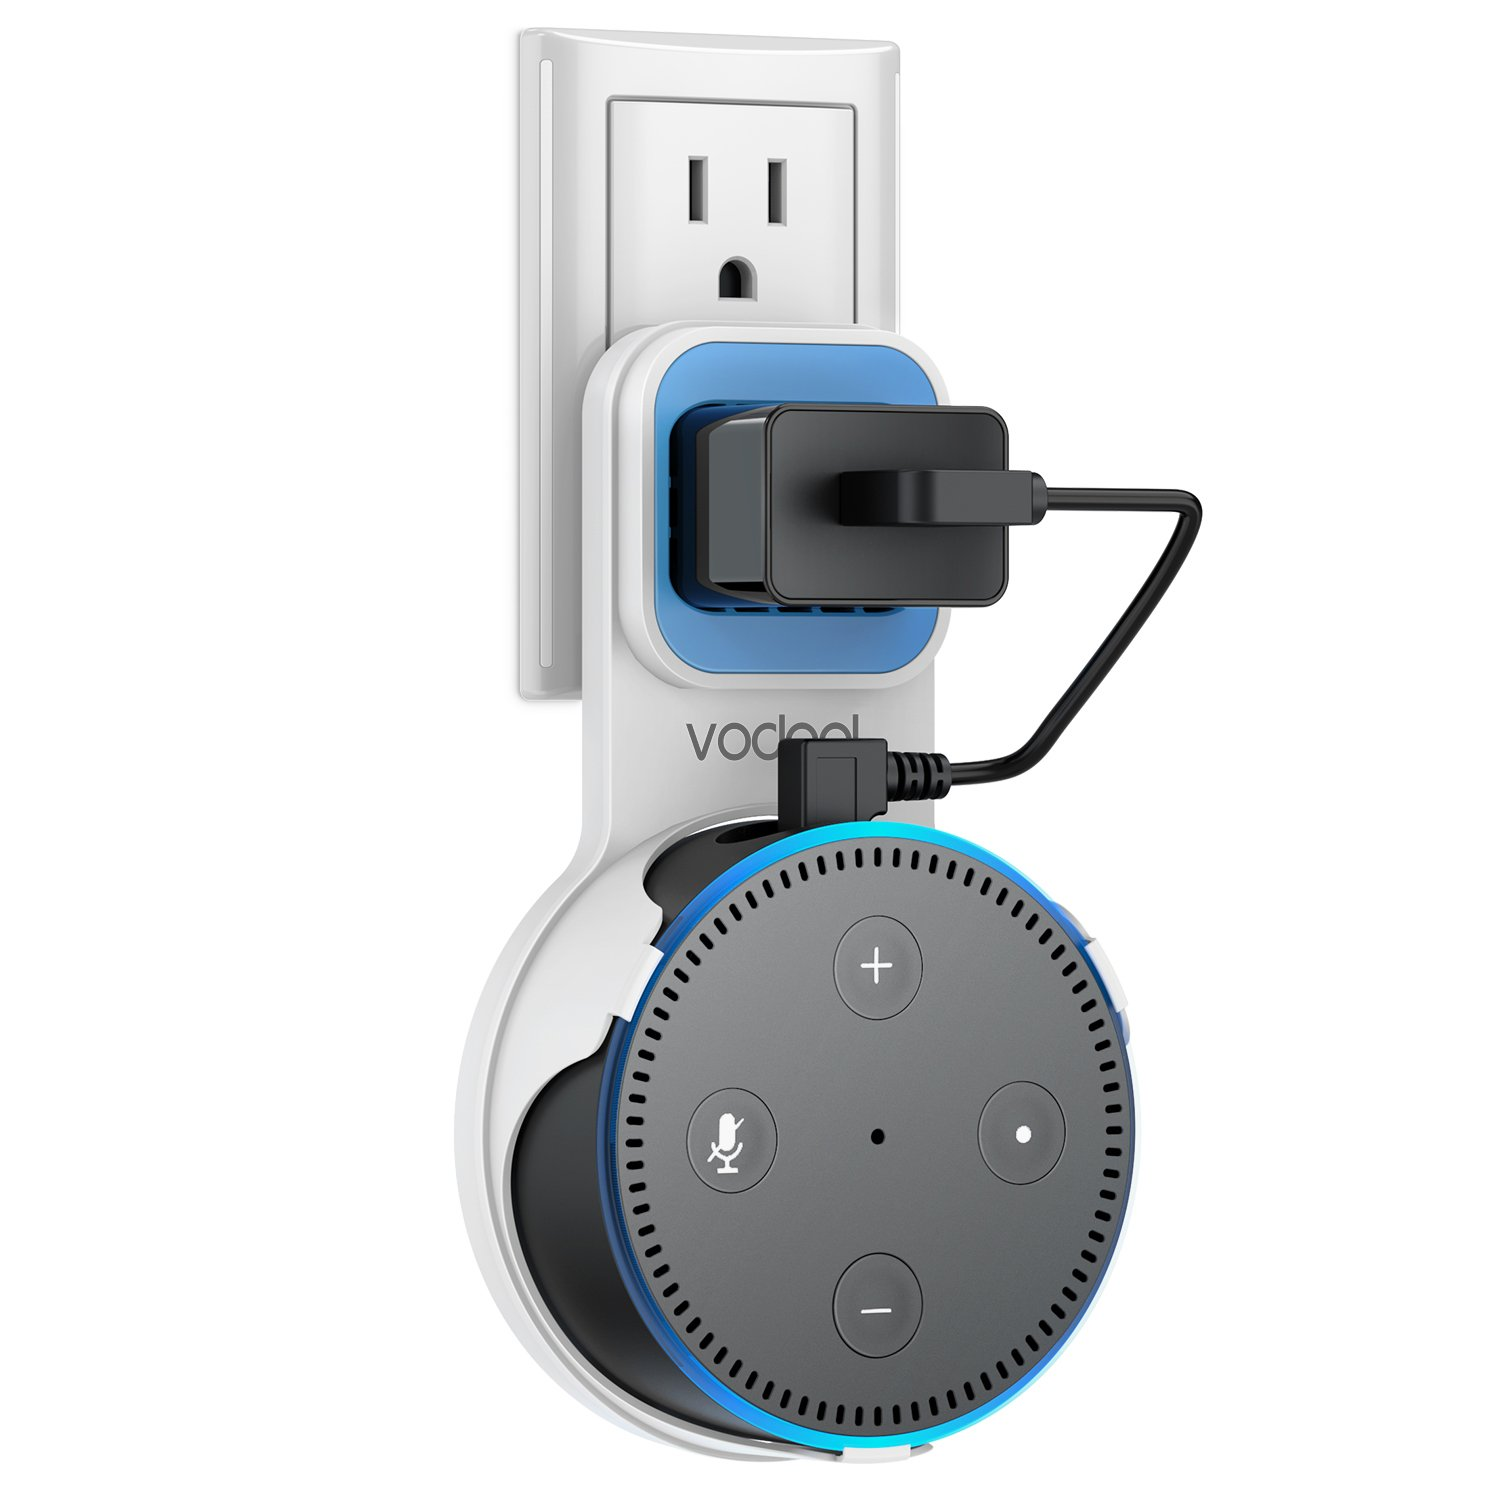 Wall Mount Stand for Echo Dot 2nd Generation, Vodool Hanger Holder Space-Saving Solution for Your Smart Home Dot without Messy Wires or Screws, Charging Cable Provided (White)